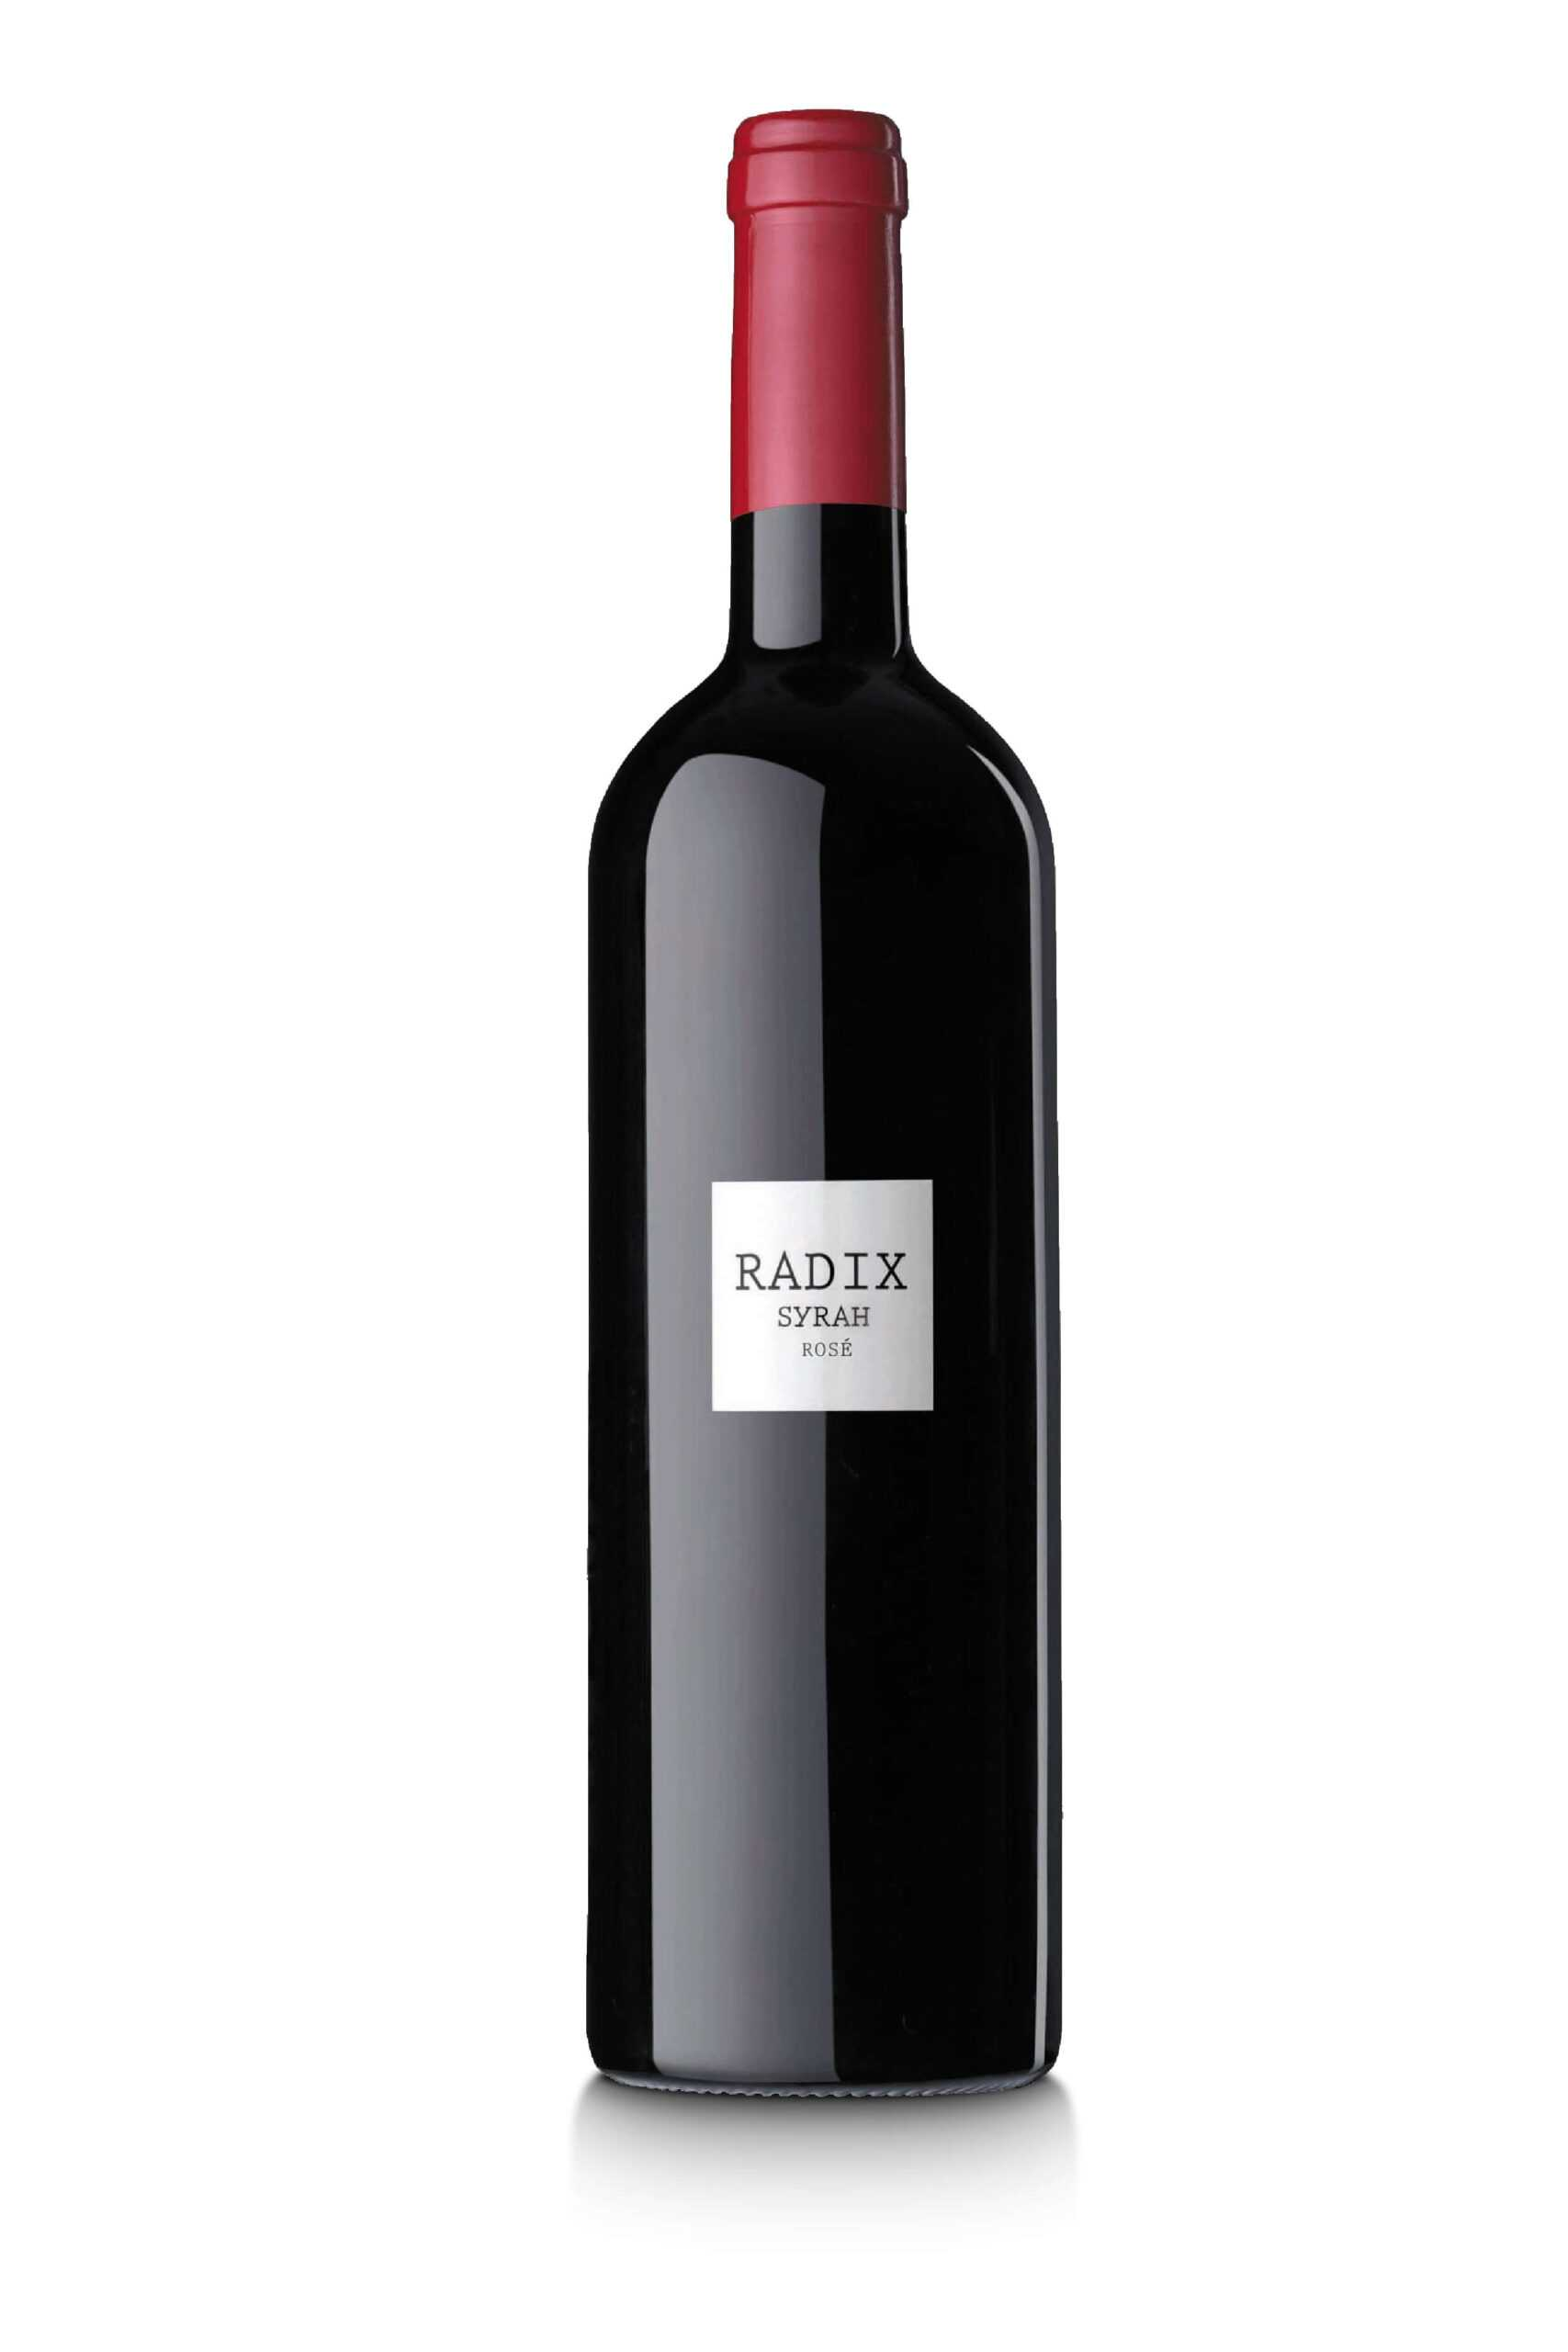 Radix 2020 vino radix pares balta scaled